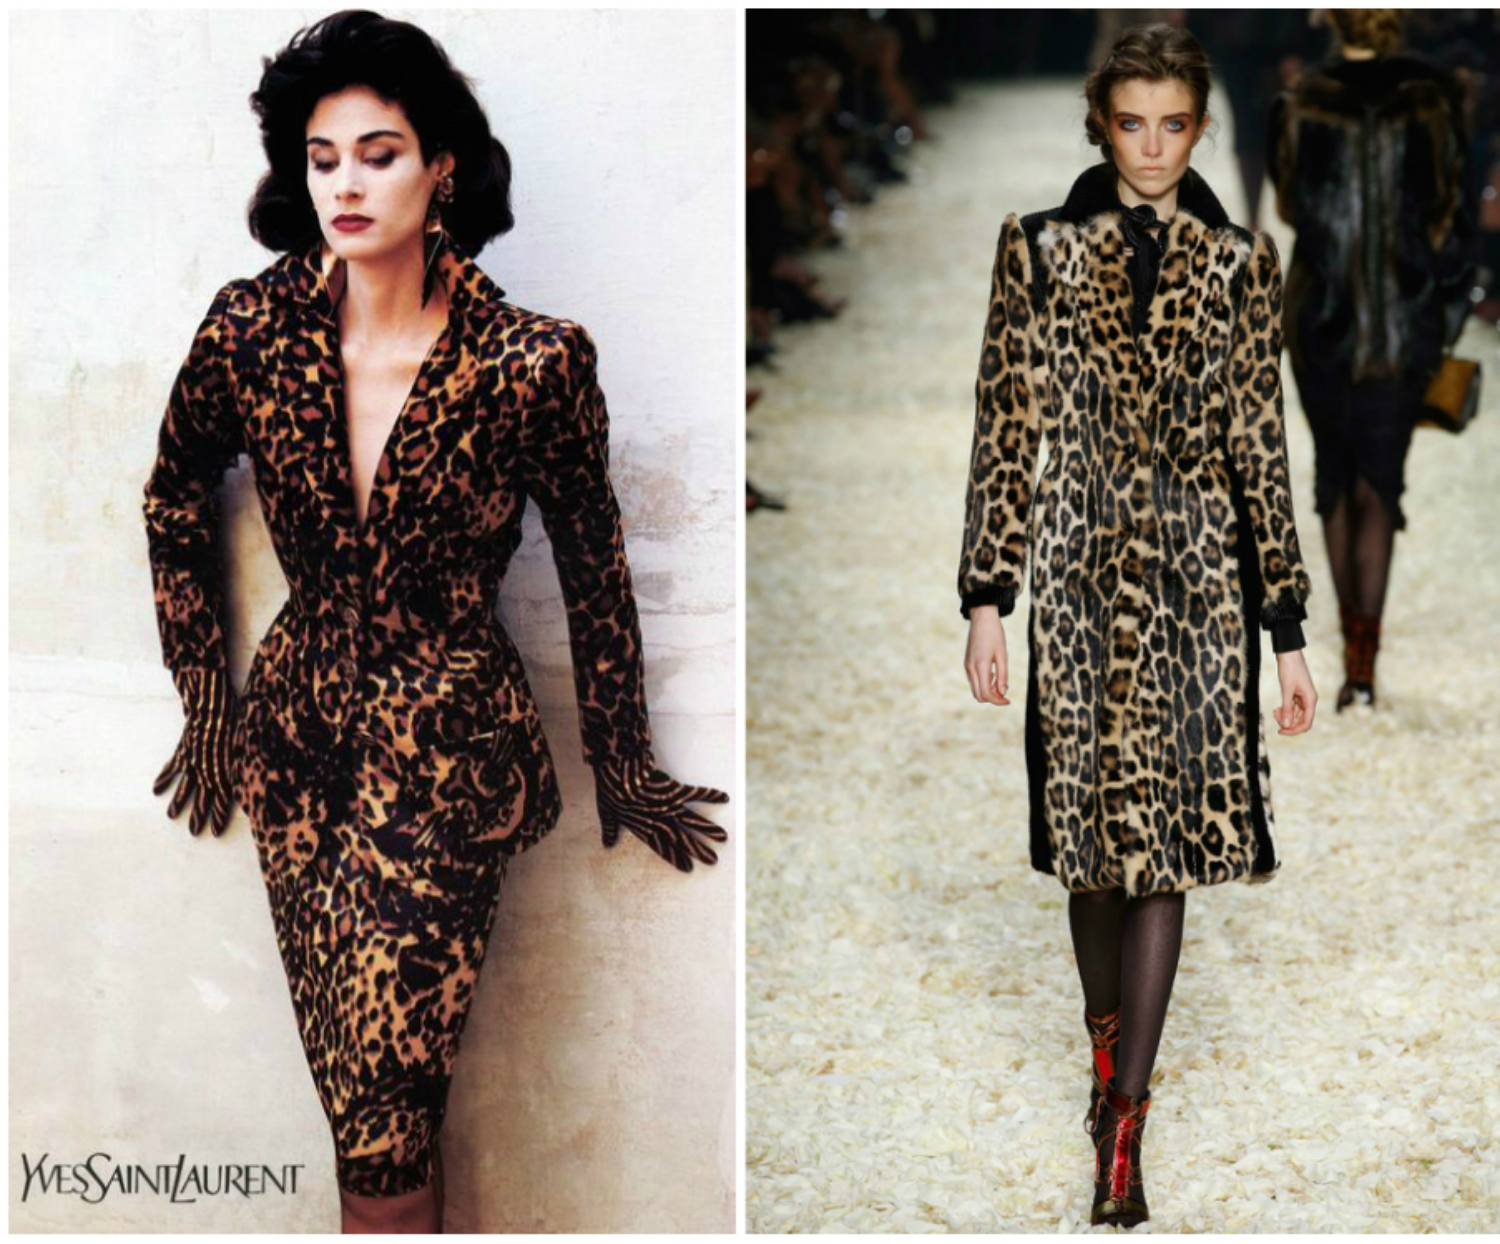 From left to right: Leopard Dress featured in the 1986Yves Saint Laurent collection, and Tom Ford's collection for London Fashion Week, Fall 2015.